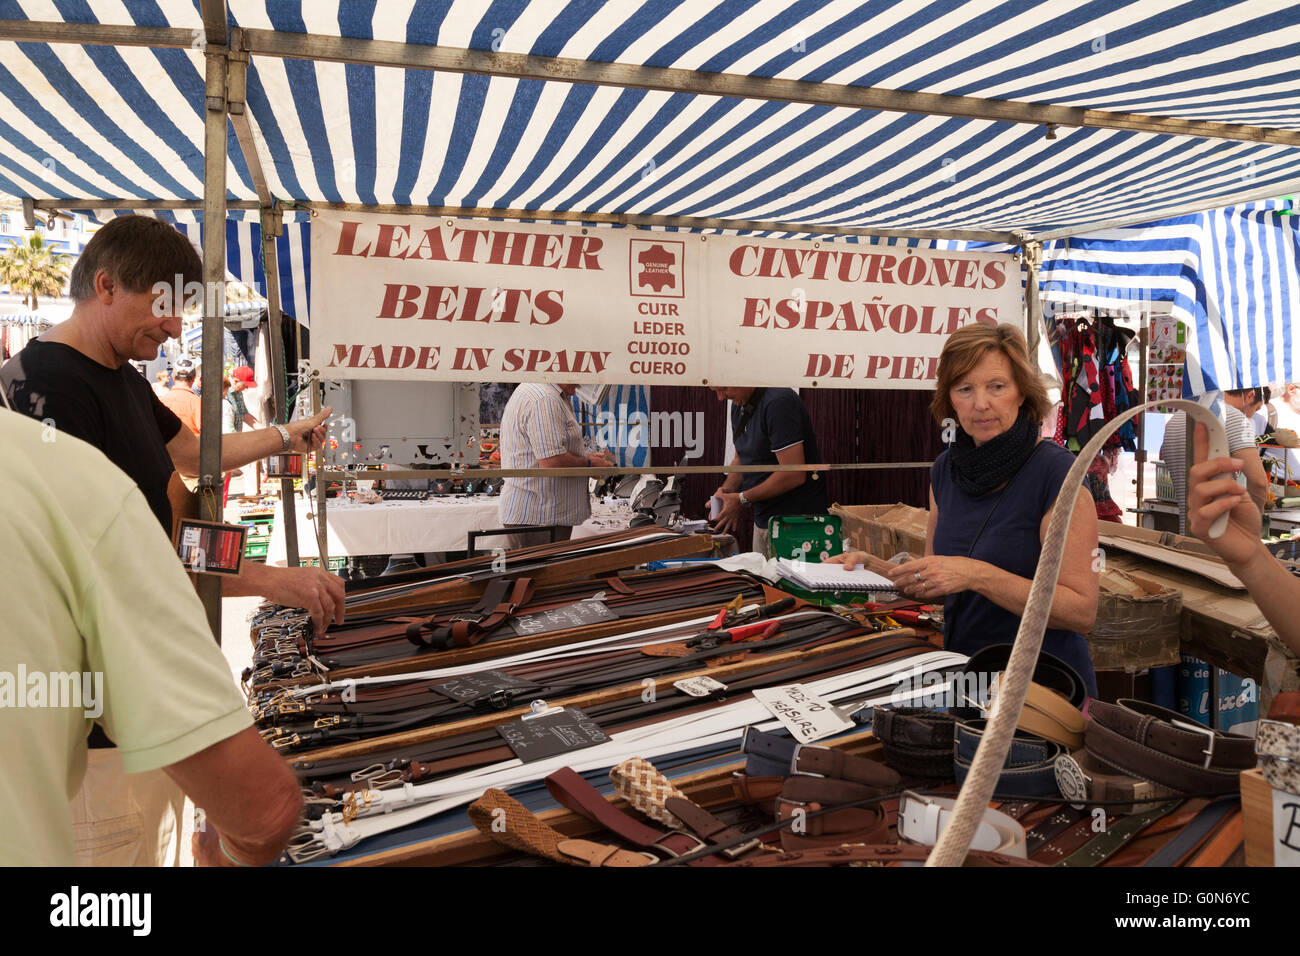 People buying leather belts at a belt stall, Estepona market, Estepona, Costa del Sol, Andalusia, Spain - Stock Image